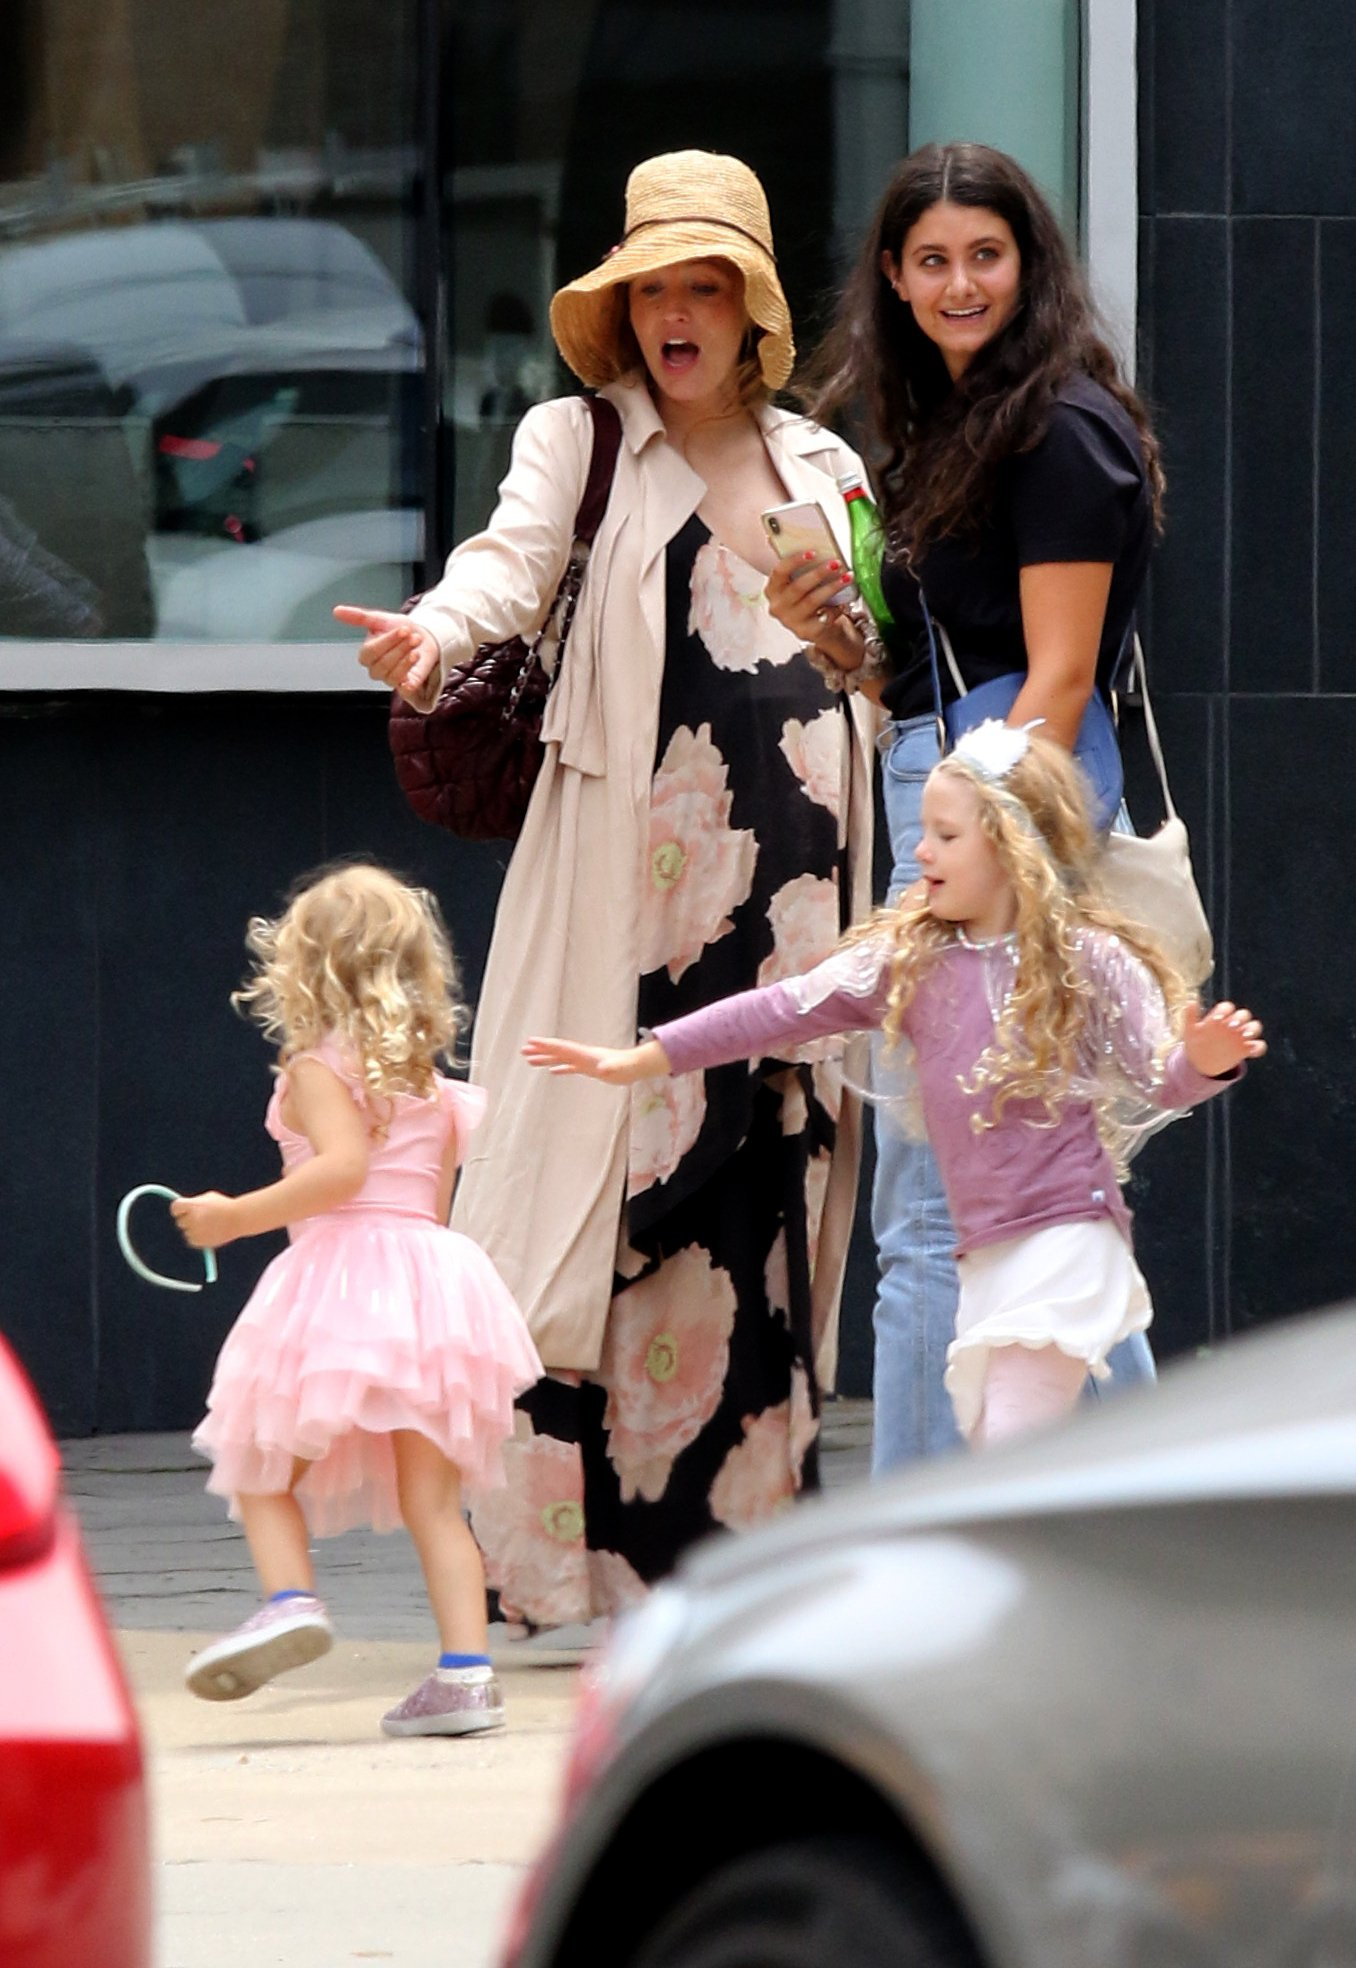 Blake Lively shows her baby bump in a floral dress while hailing a cab with her daughters, Inez and James in Downtown Manhattan.  Blake was all smiles as she was seen chatting with a friend while her daughters were dressed in costumes and played around her. 05 Aug 2019, Image: 462553569, License: Rights-managed, Restrictions: World Rights, Model Release: no, Credit line: Profimedia, Mega Agency